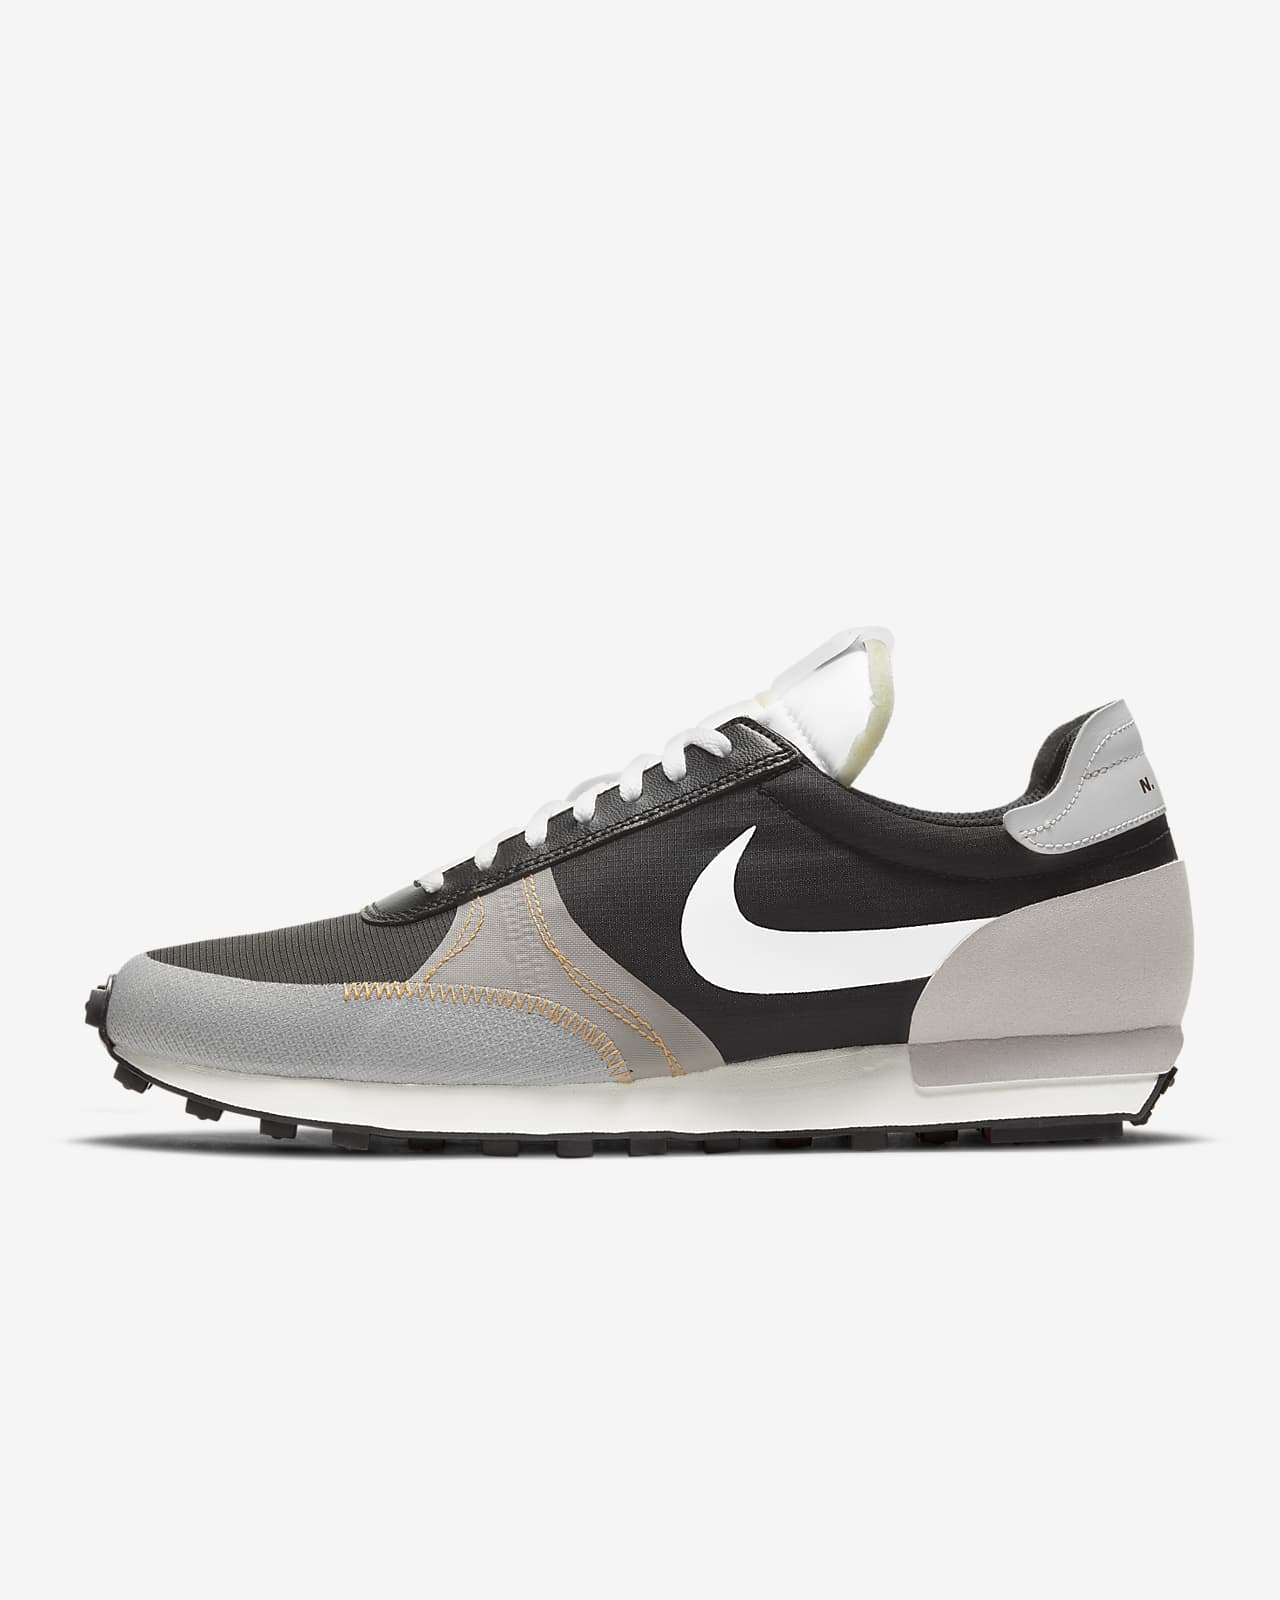 Chaussure Nike DBreak-Type SE pour Homme